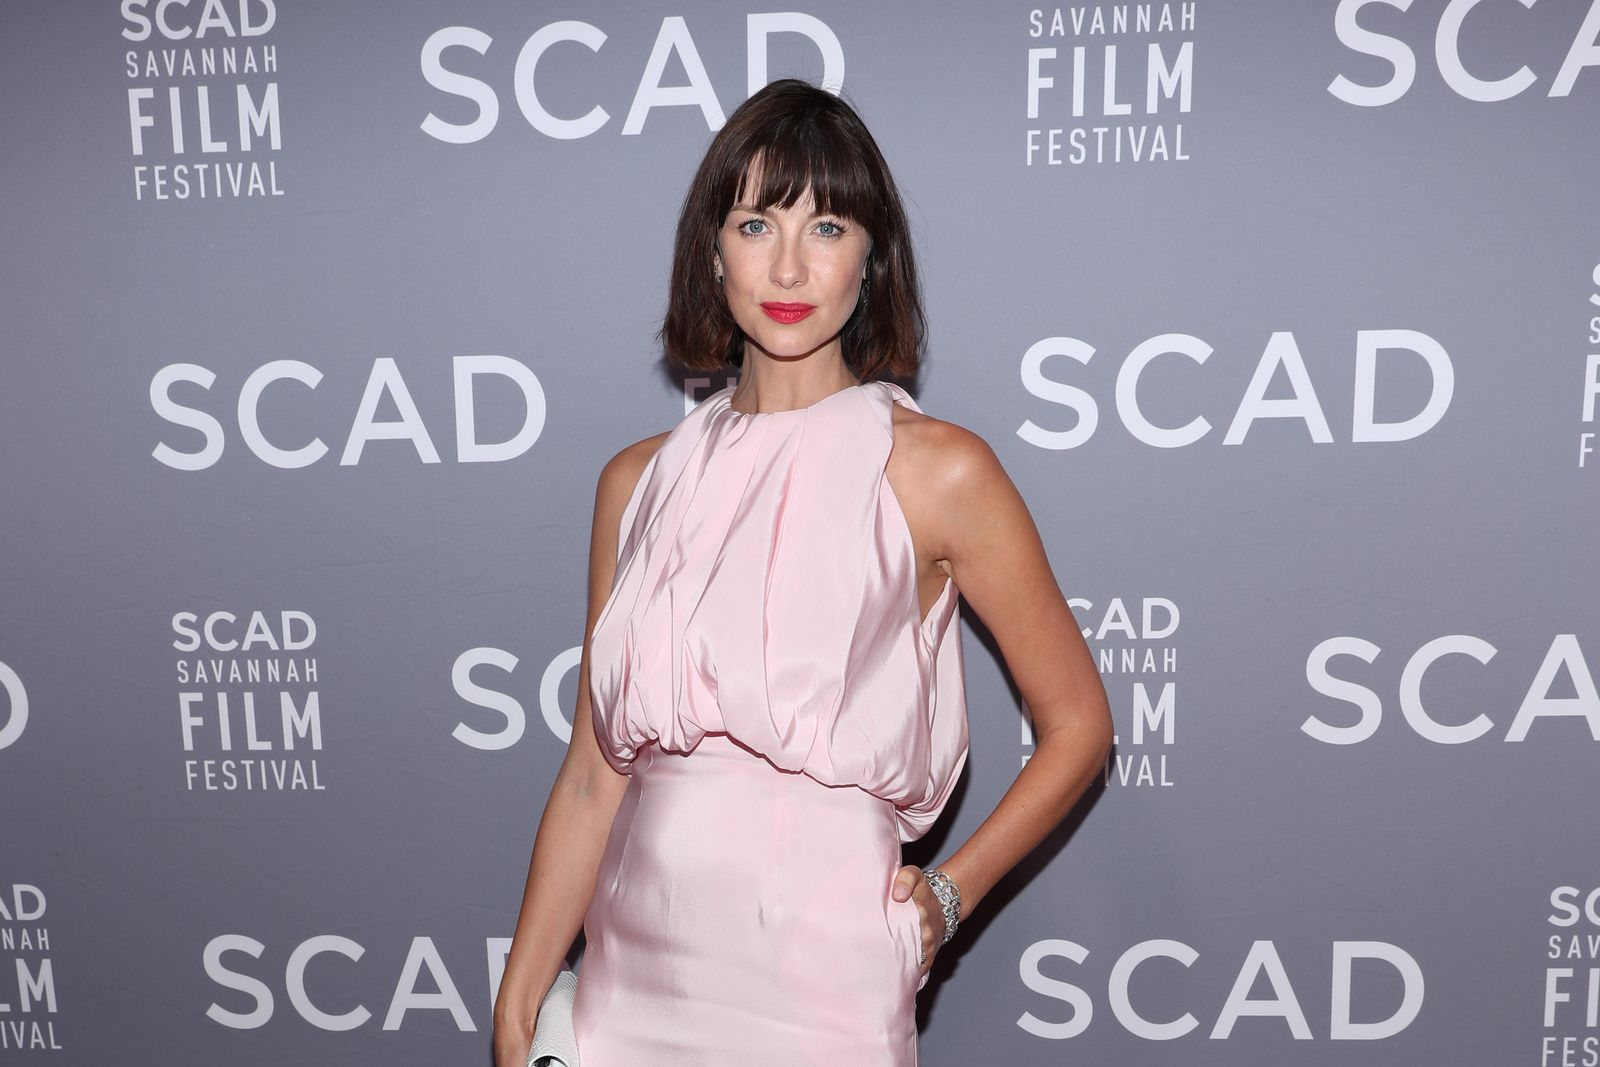 Caitriona Balfe attending the 21st SCAD Savannah Film Festival - Red Carpet/Photo:Getty Images